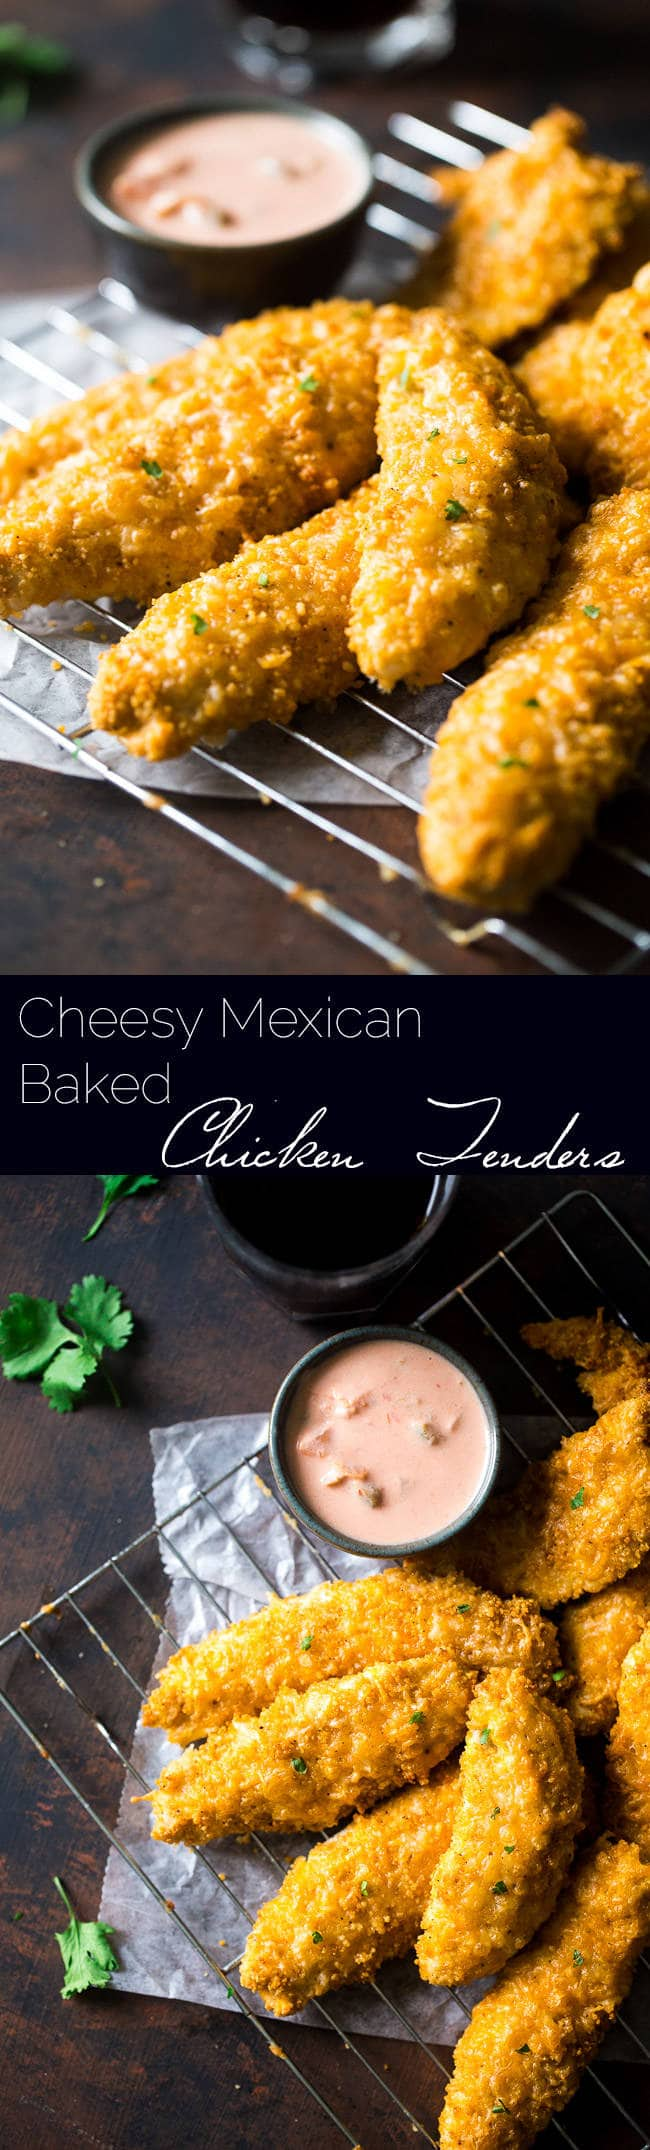 Cheesy Mexican Baked Chicken Tenders with Couscous Crust - It only takes 5 ingredients to make this super easy, healthy meal that the whole family will love! | Foodfaithfitness.com | @Foodfaithfit